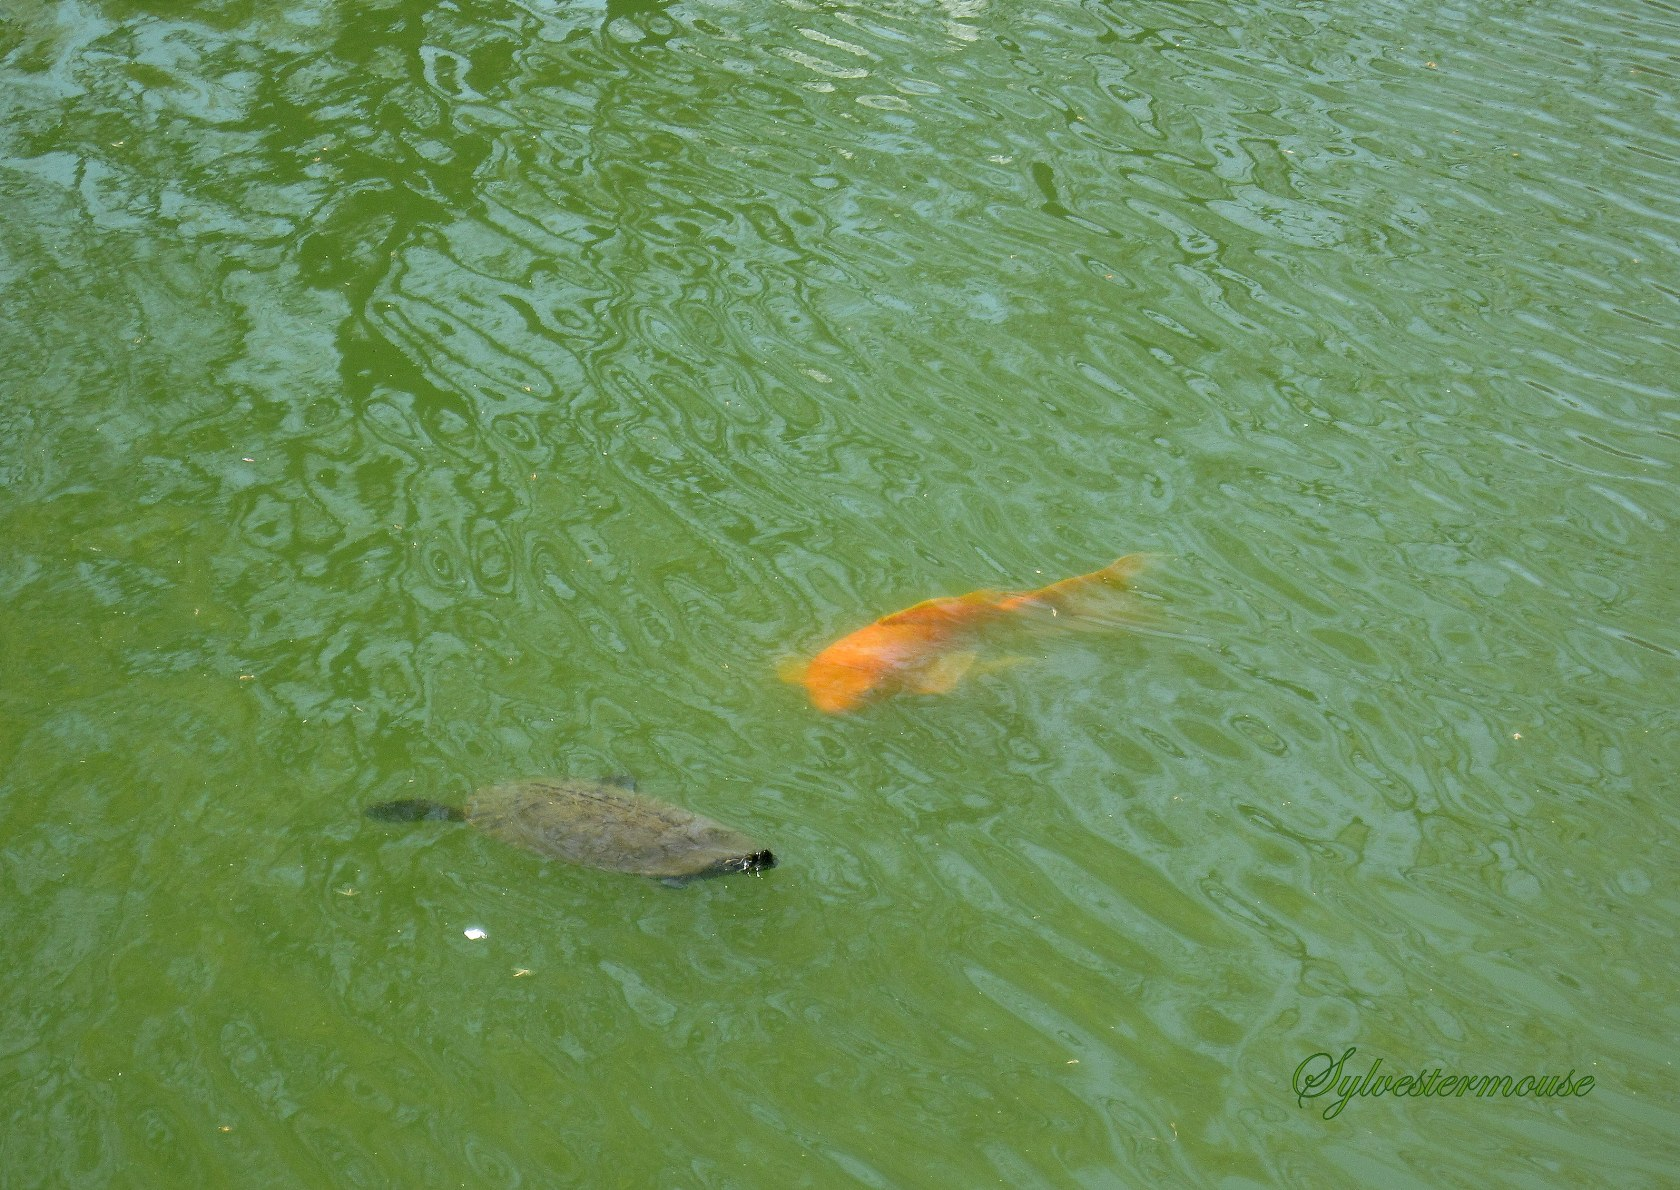 Beneath the Surface photo of Turtle & Koi photo by Sylvestermouse